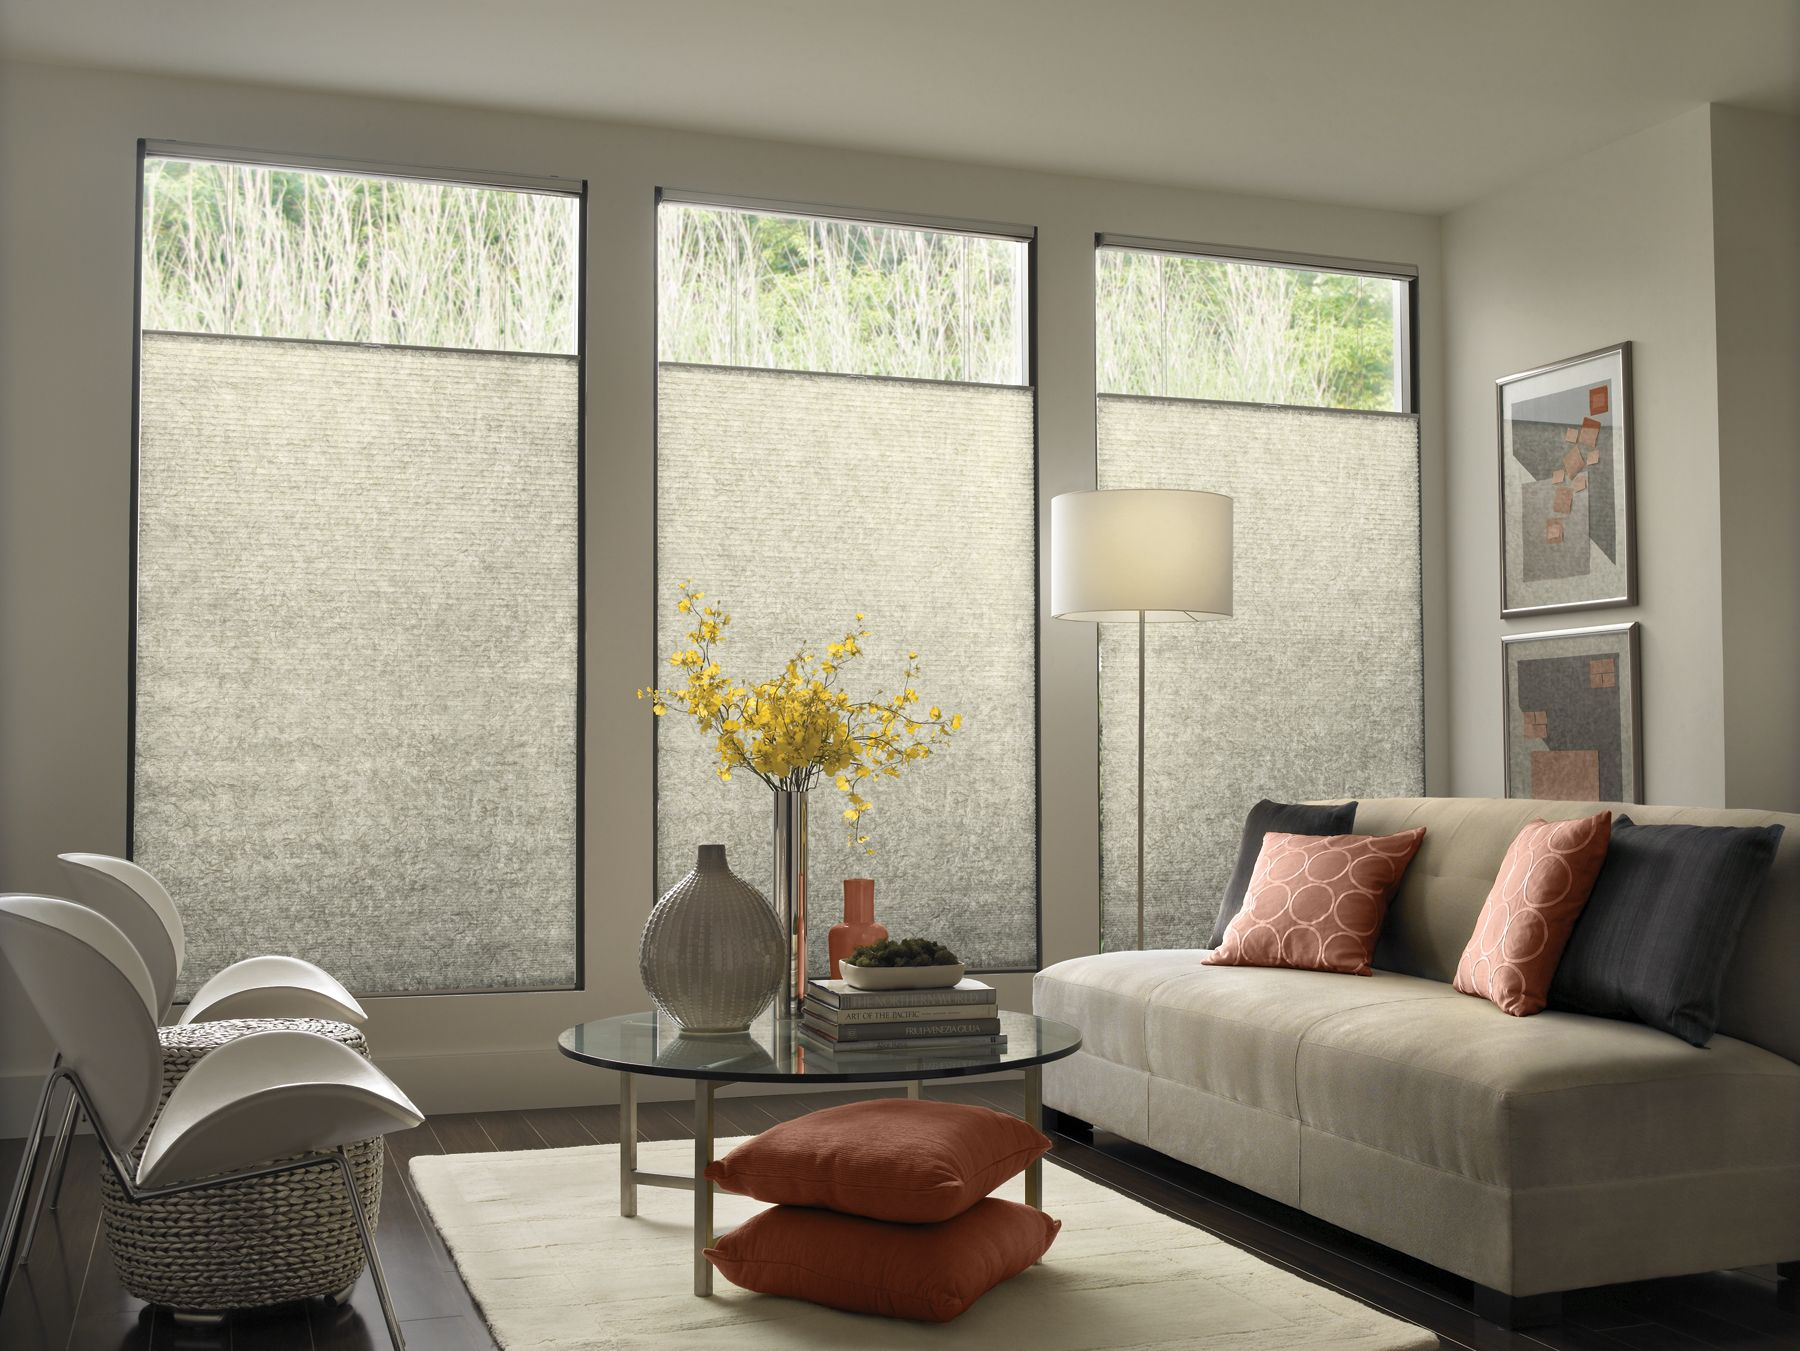 How To Design The Bedroom Window Treatments Cozy Modern